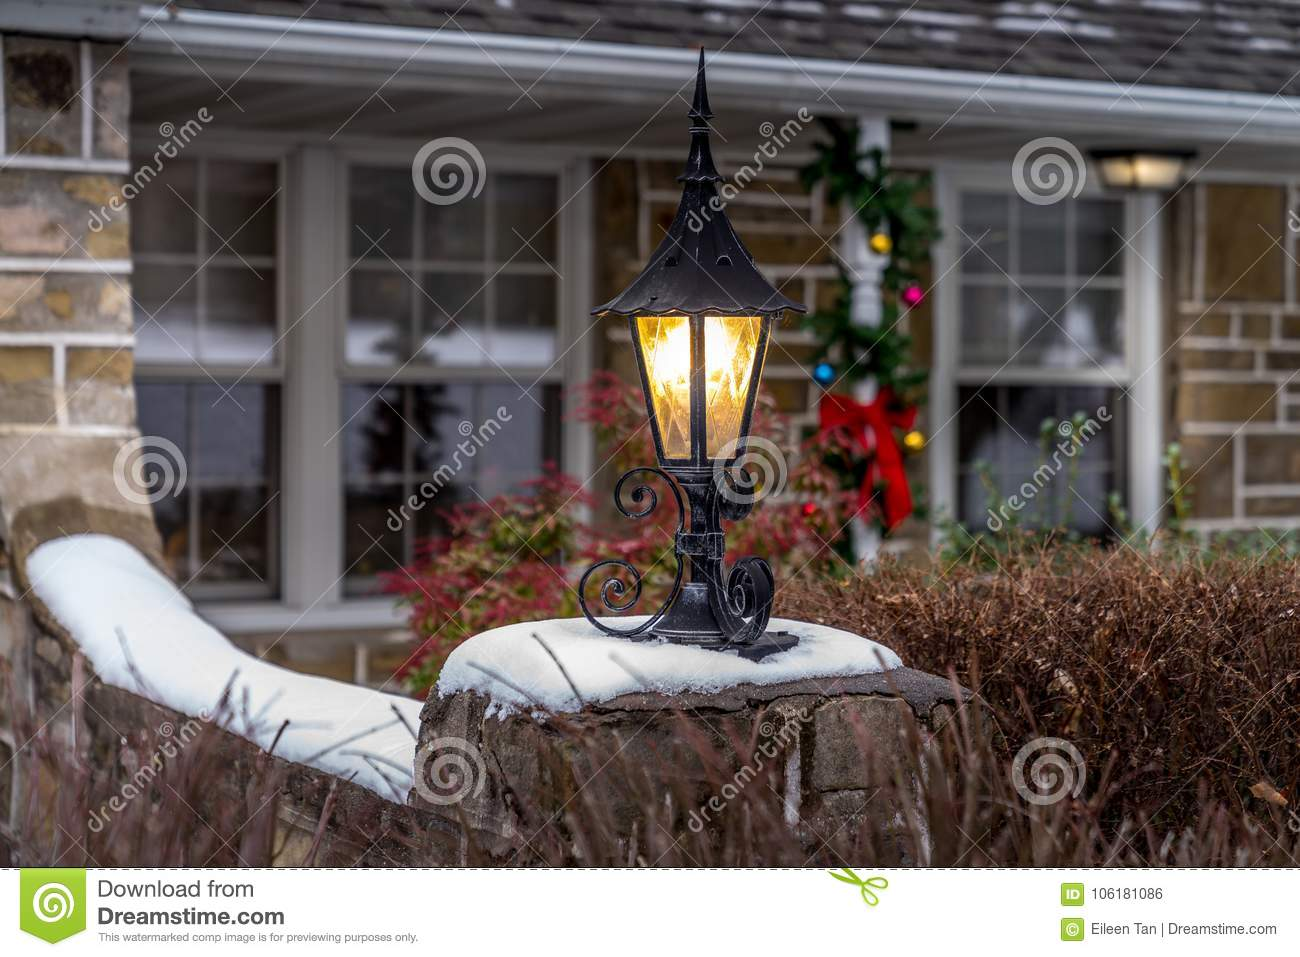 Outdoor Christmas Decorations And Lantern Stock Photo Image Of Road Tree 106181086